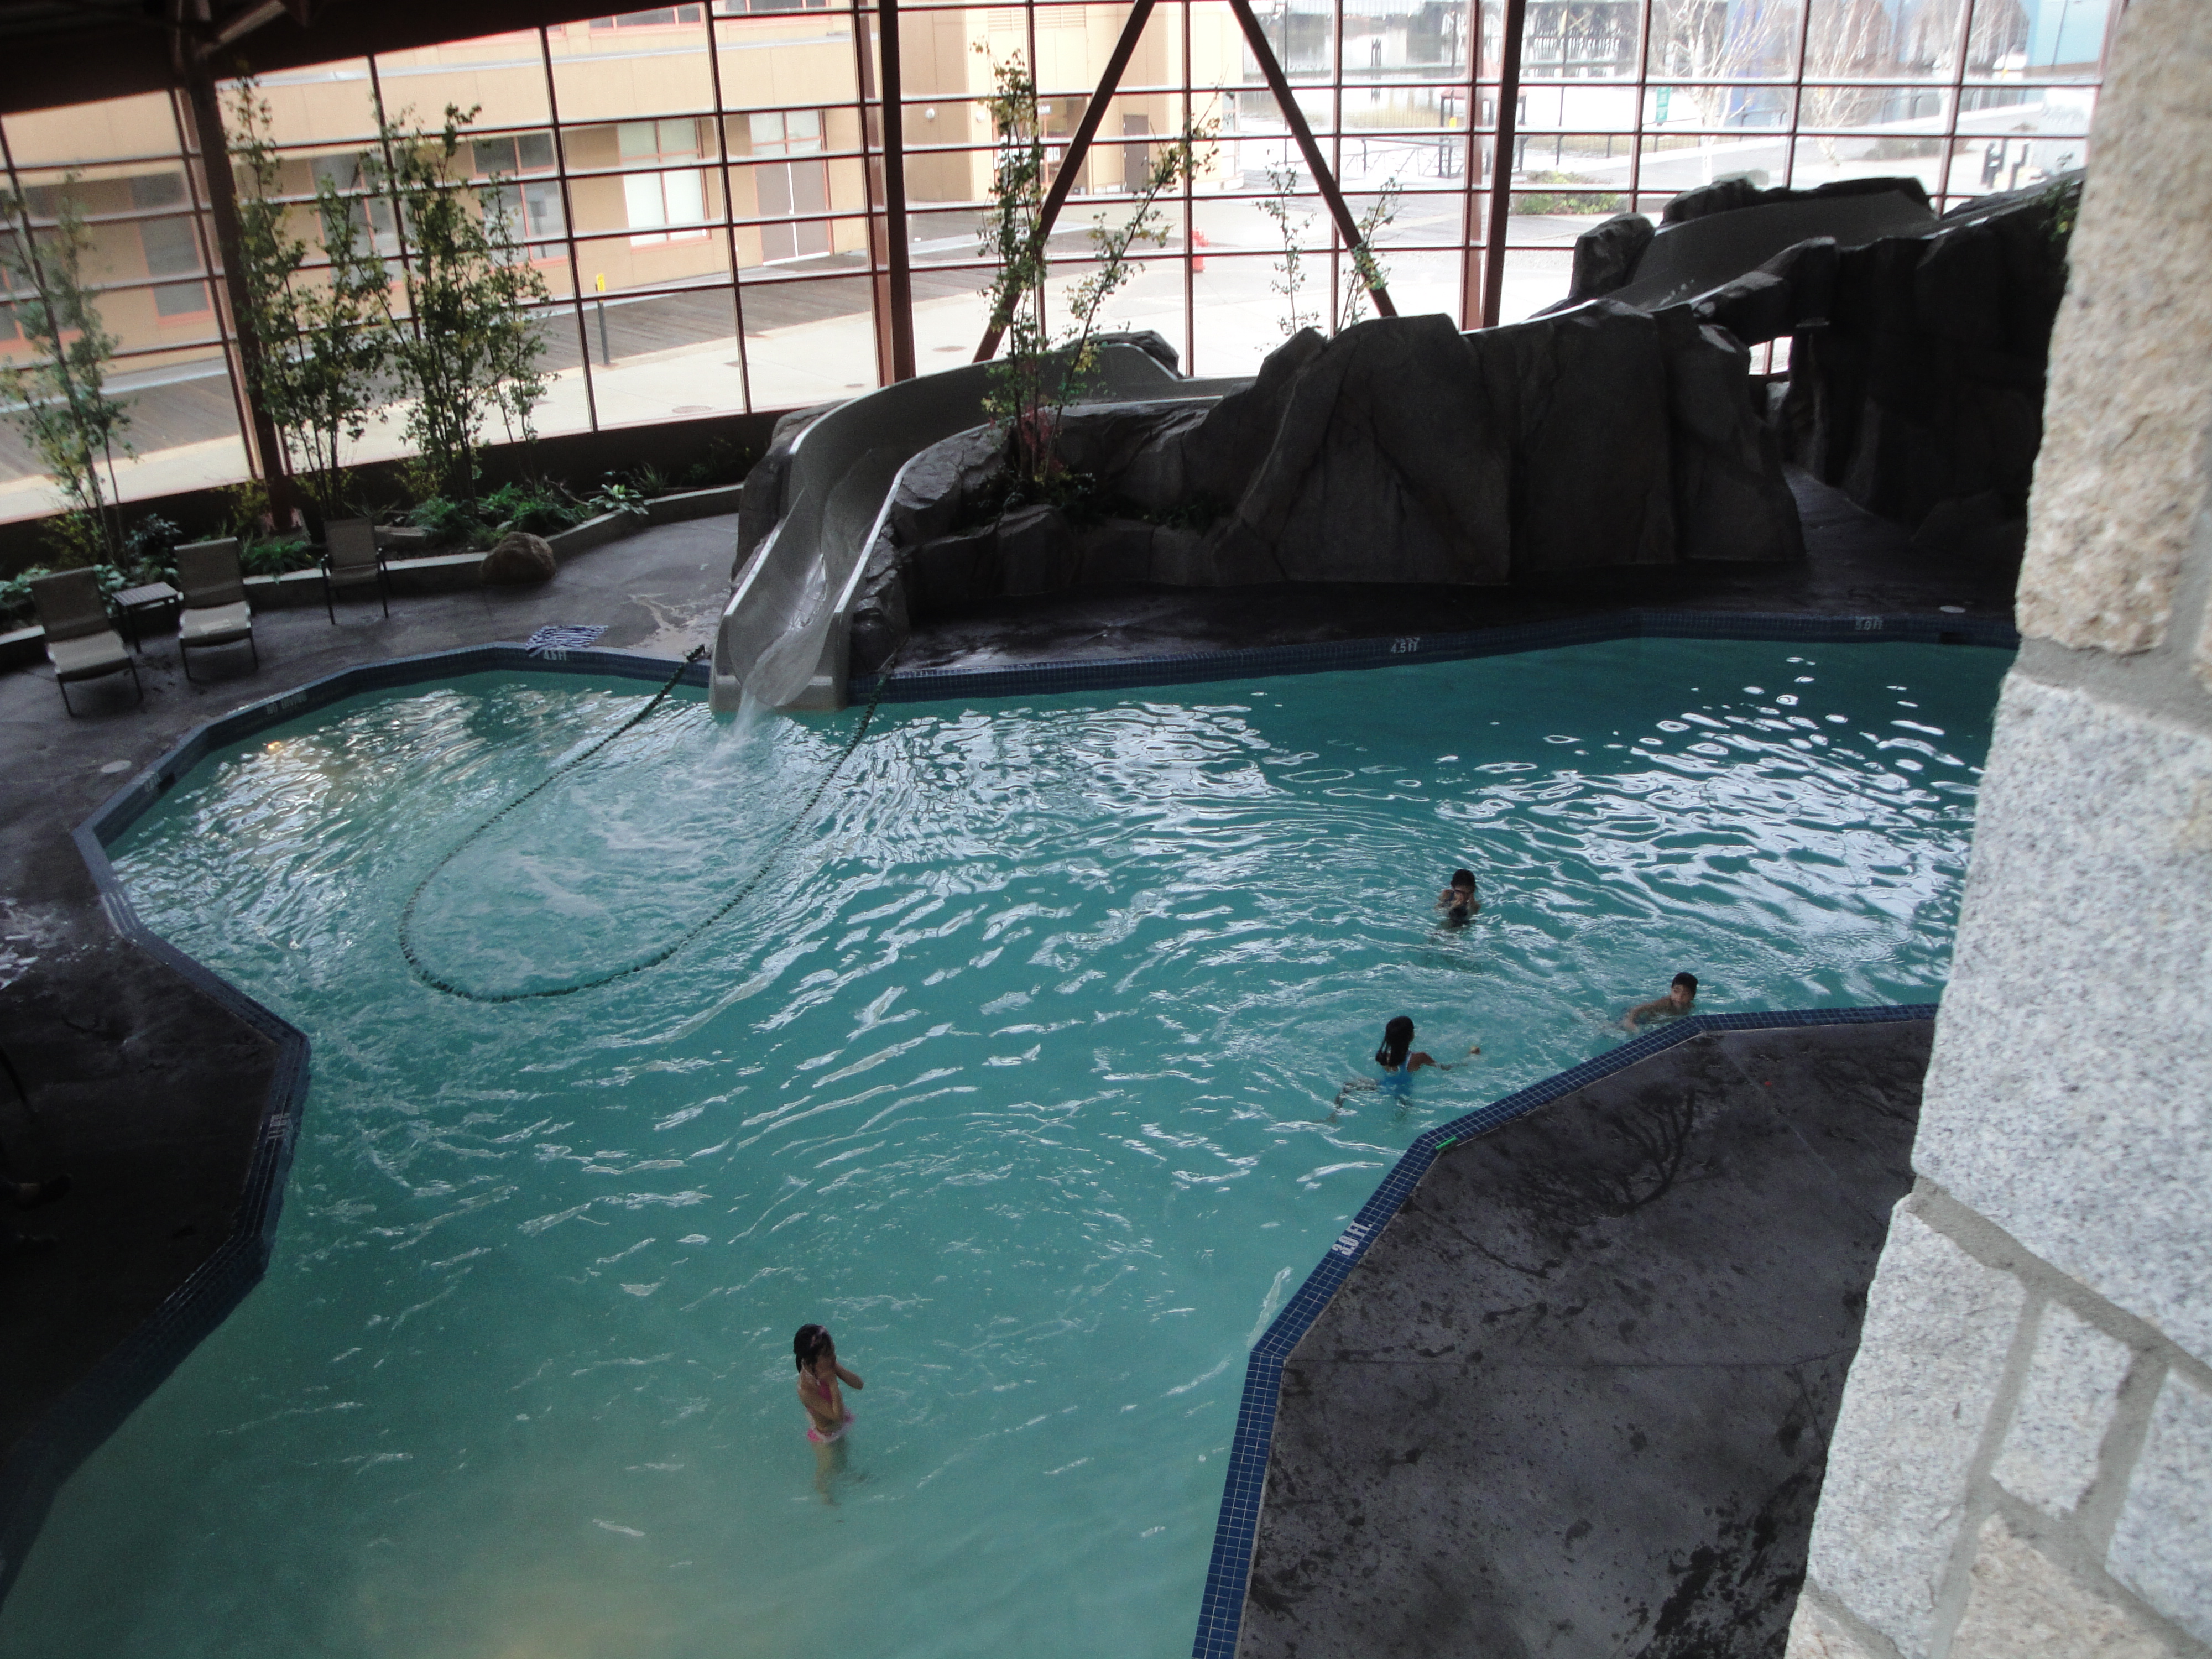 River Rock Casino Spa